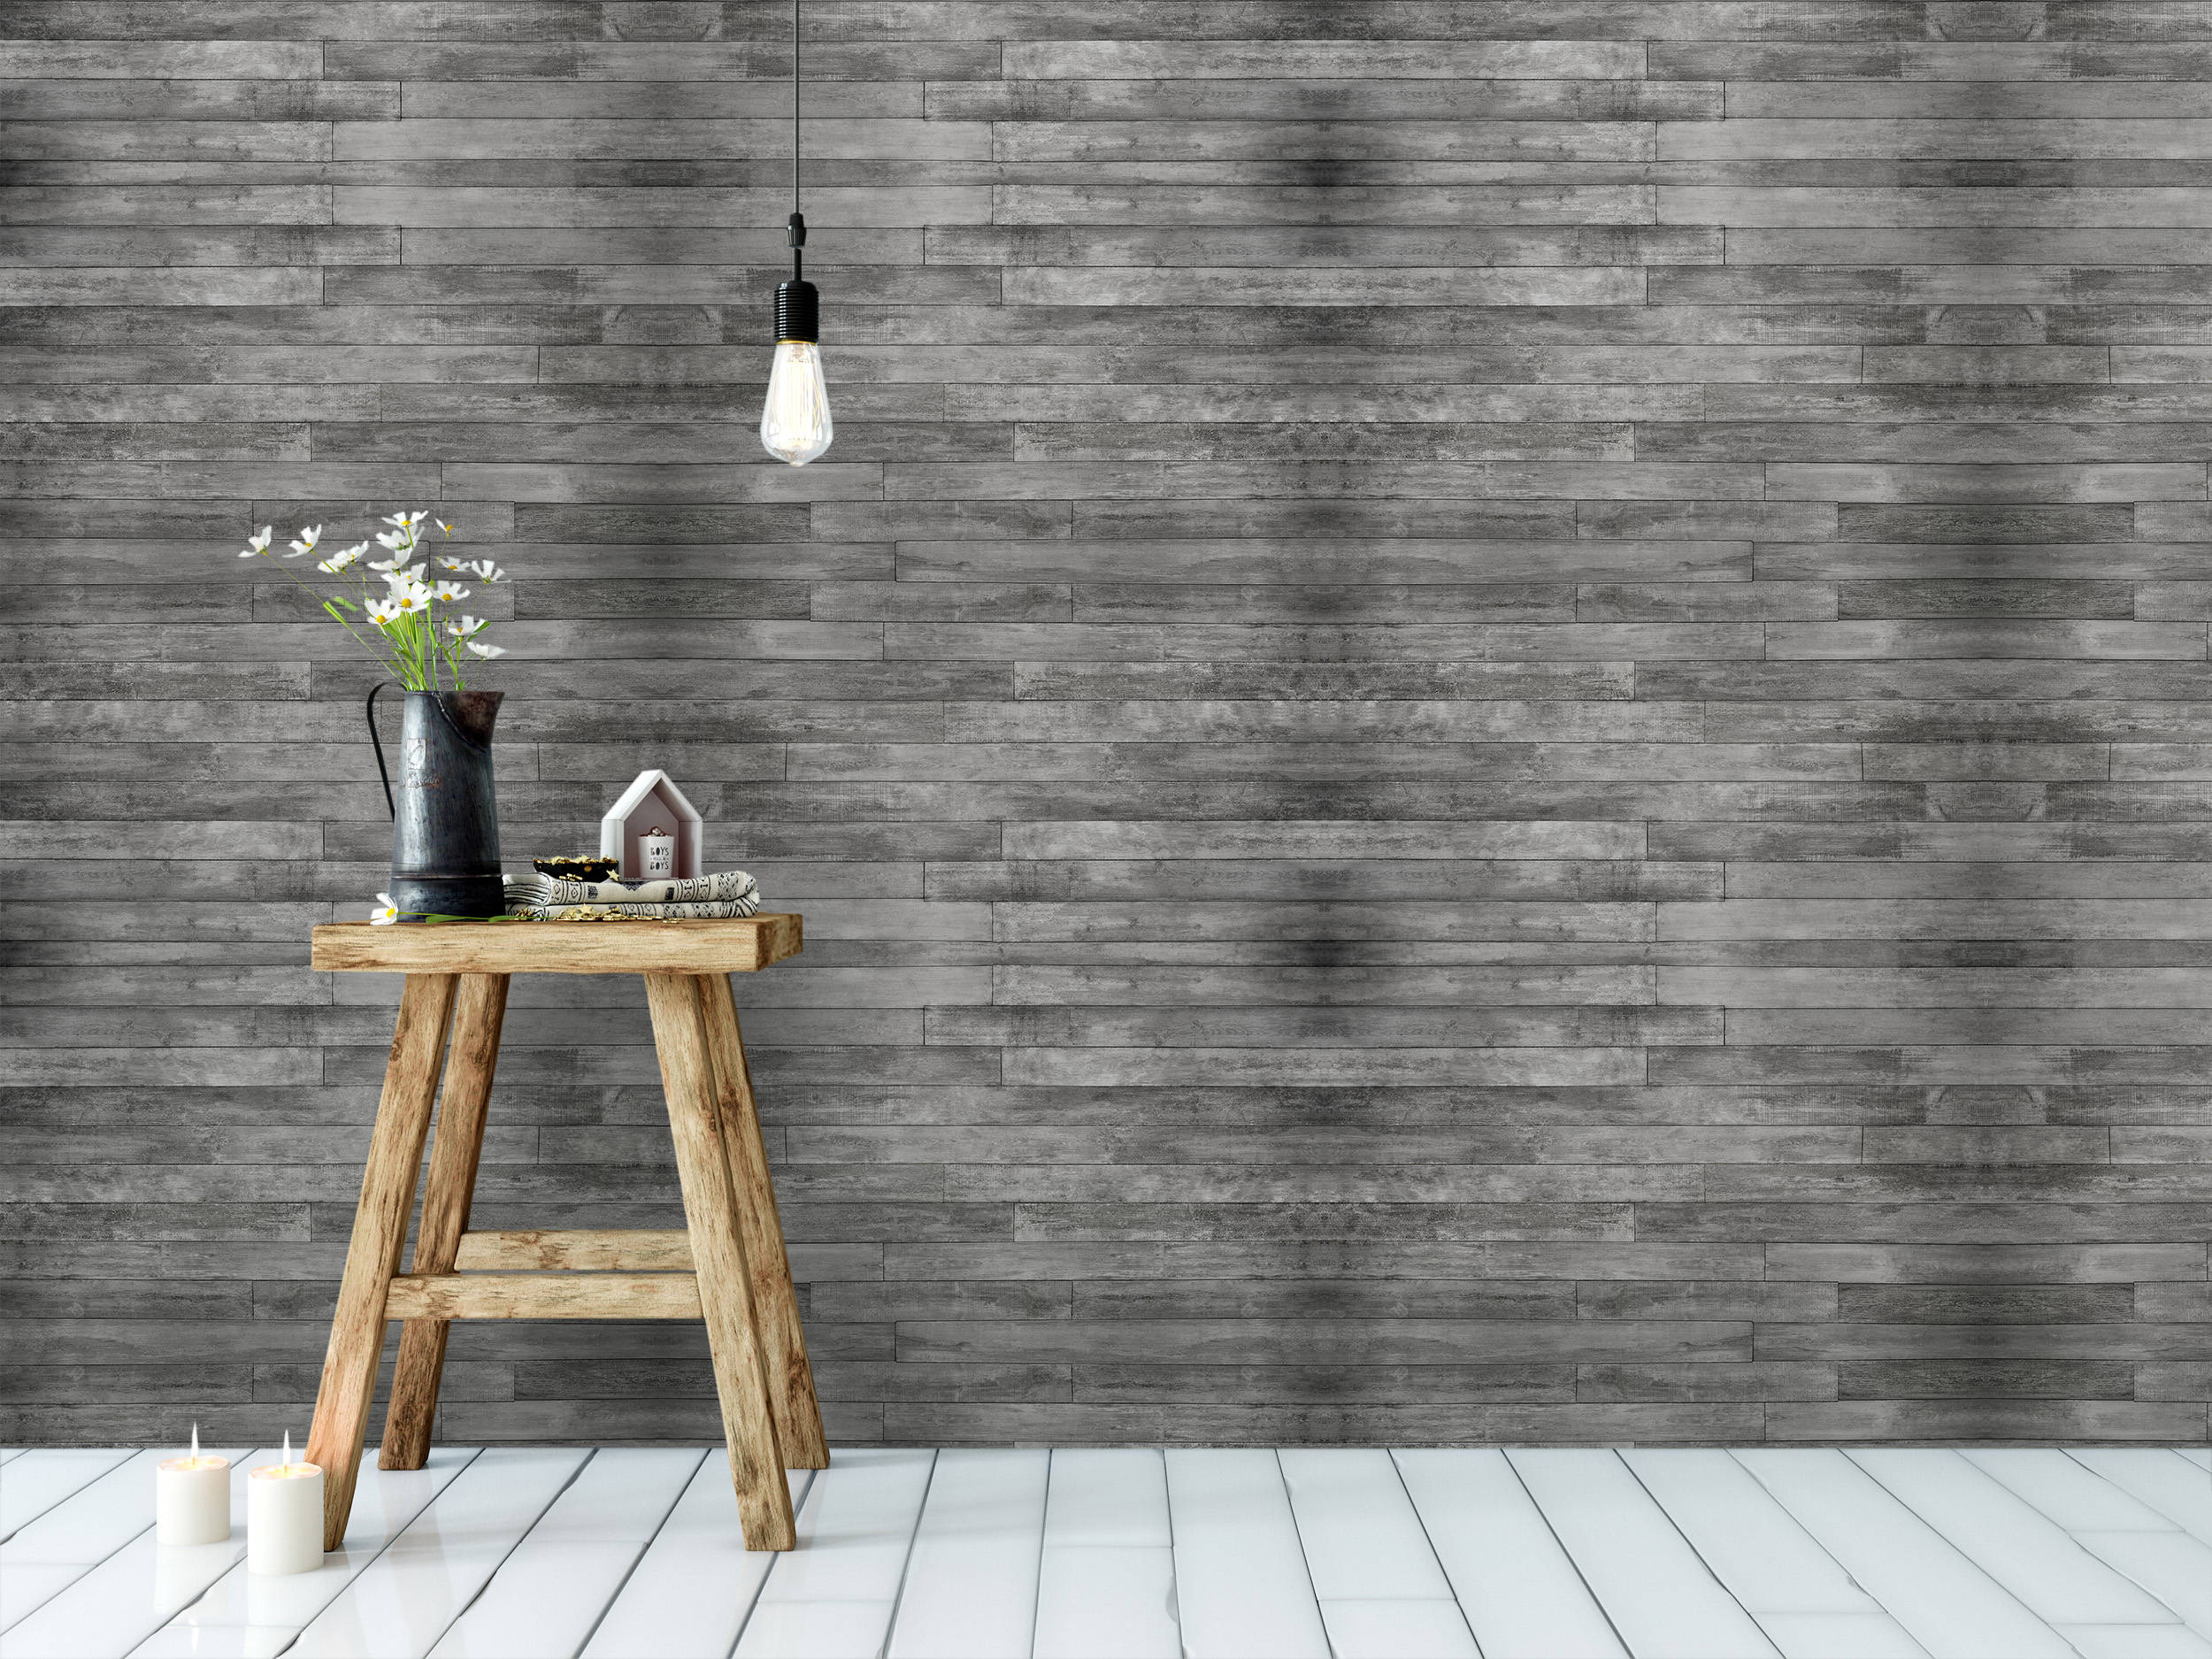 CostaCover Distressed Rustic Wood Plank Wallpaper